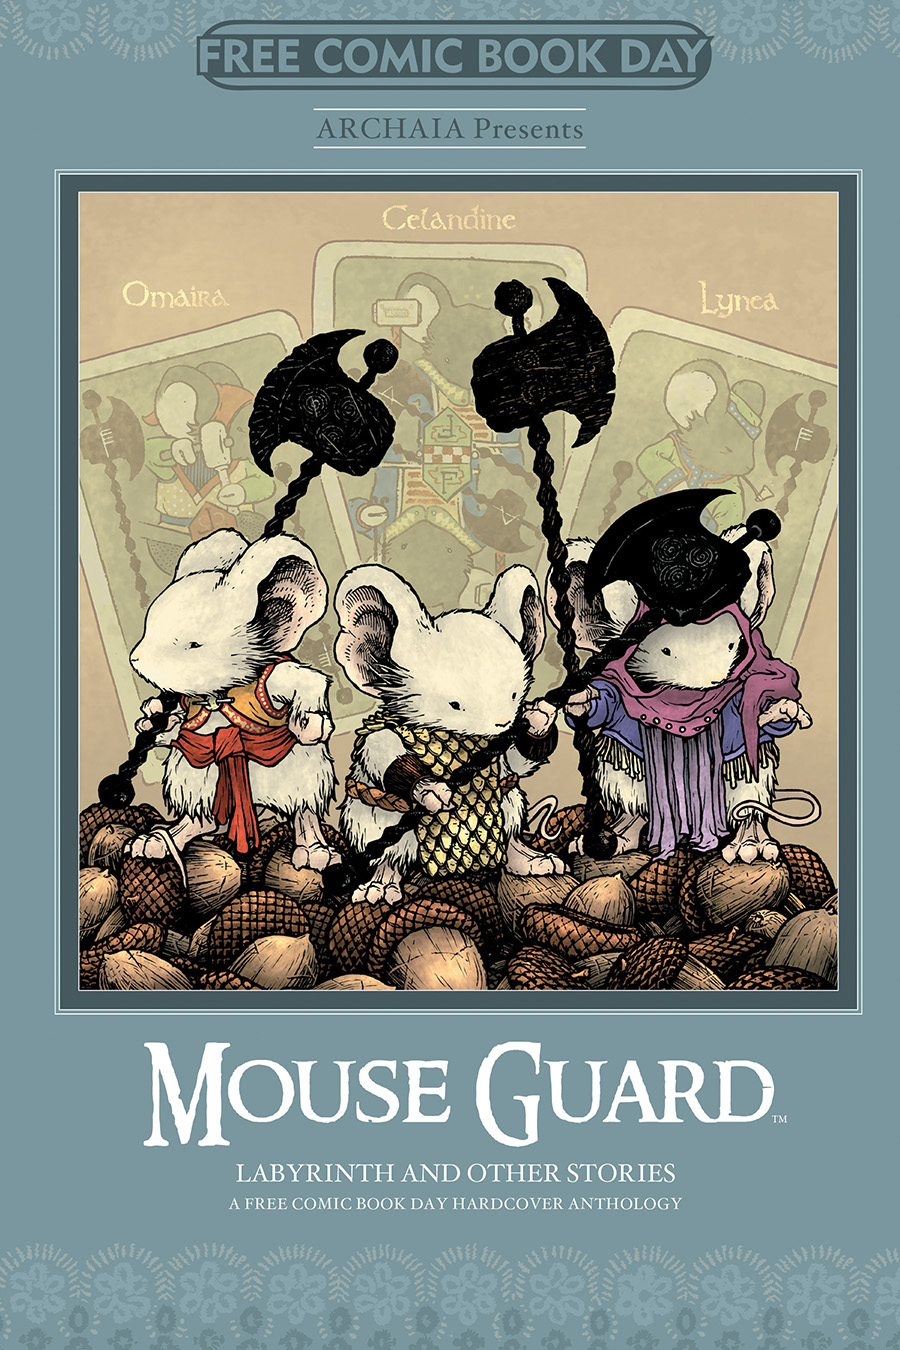 2014 Archaia Free Comic Book Day Cover